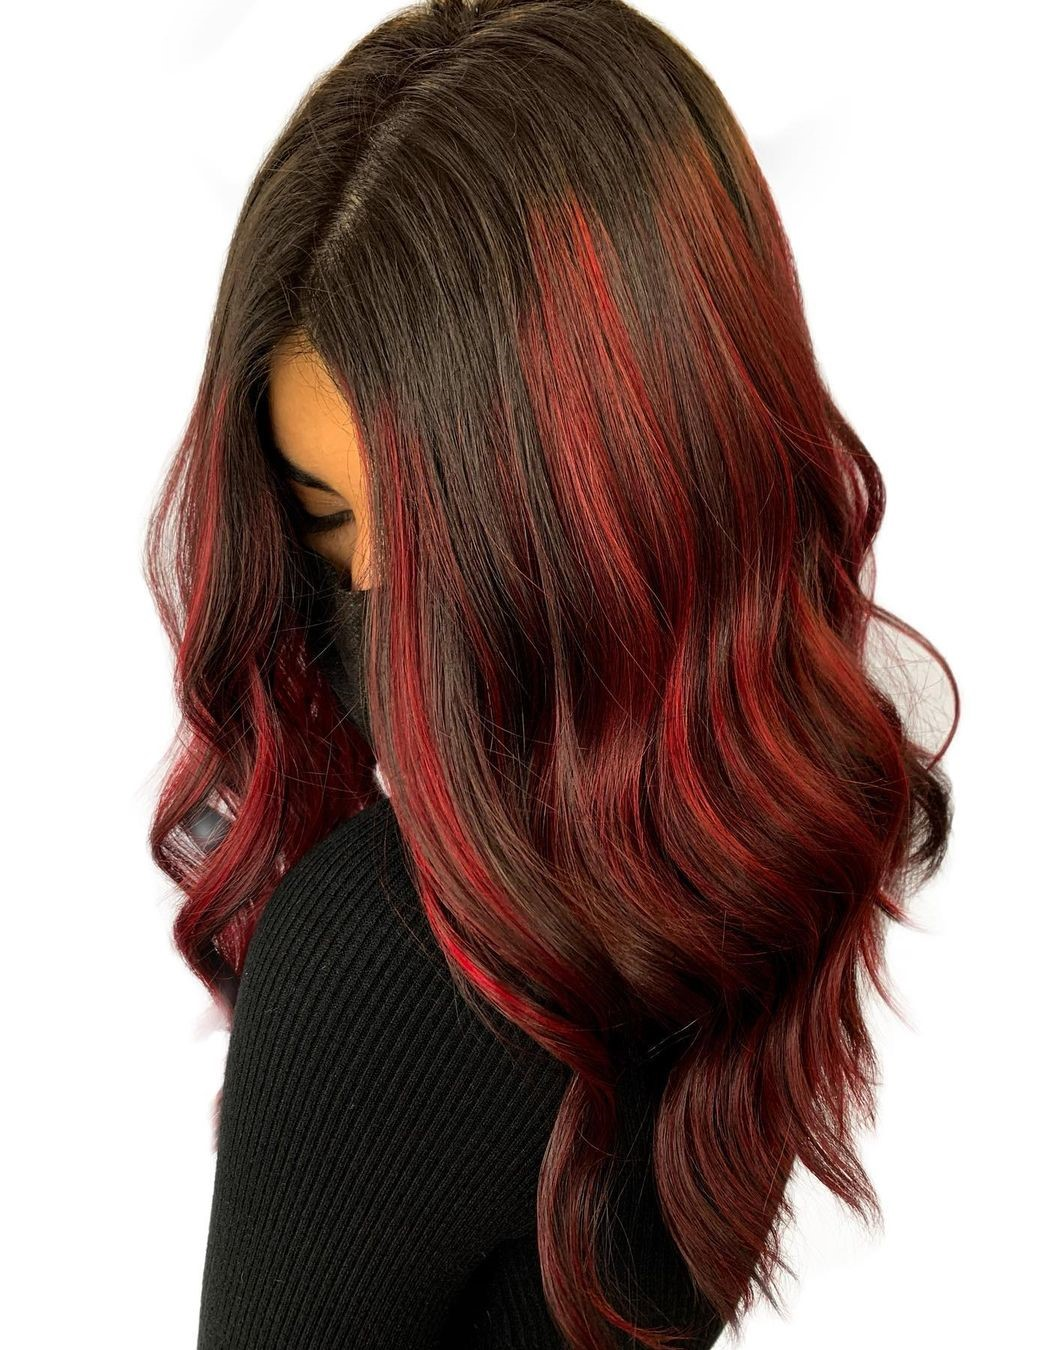 Brunette Hair with Red Balayage